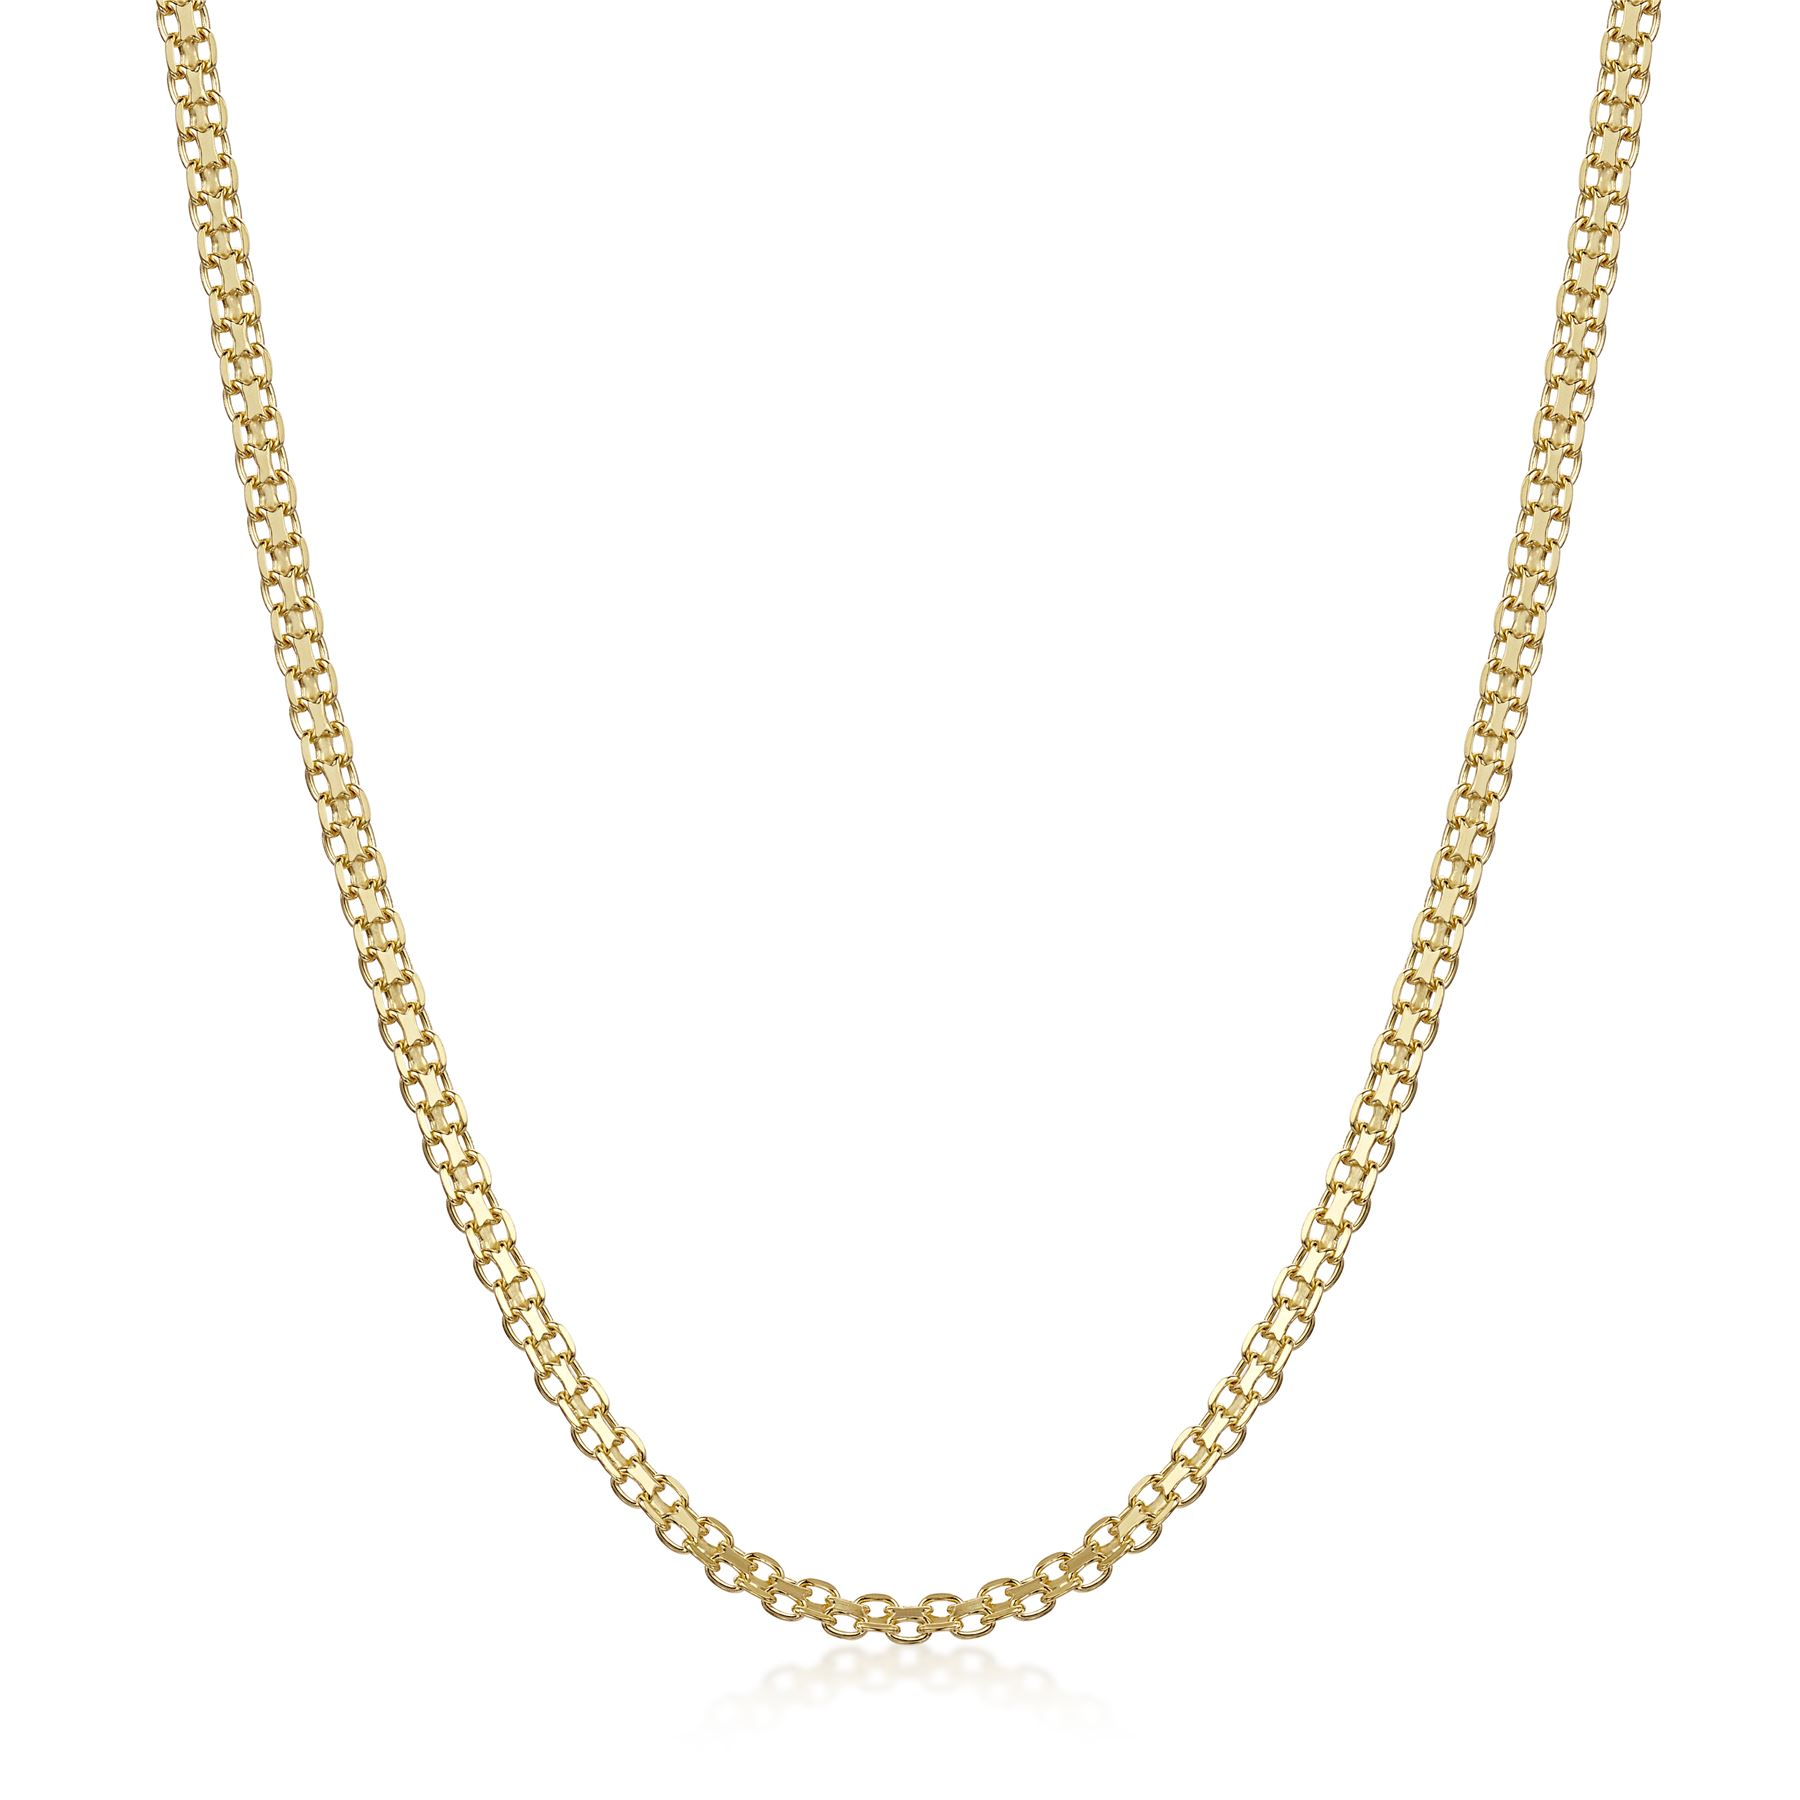 Amberta-Jewelry-Gold-Plated-on-Real-925-Sterling-Silver-Necklace-Chain-Italy thumbnail 40